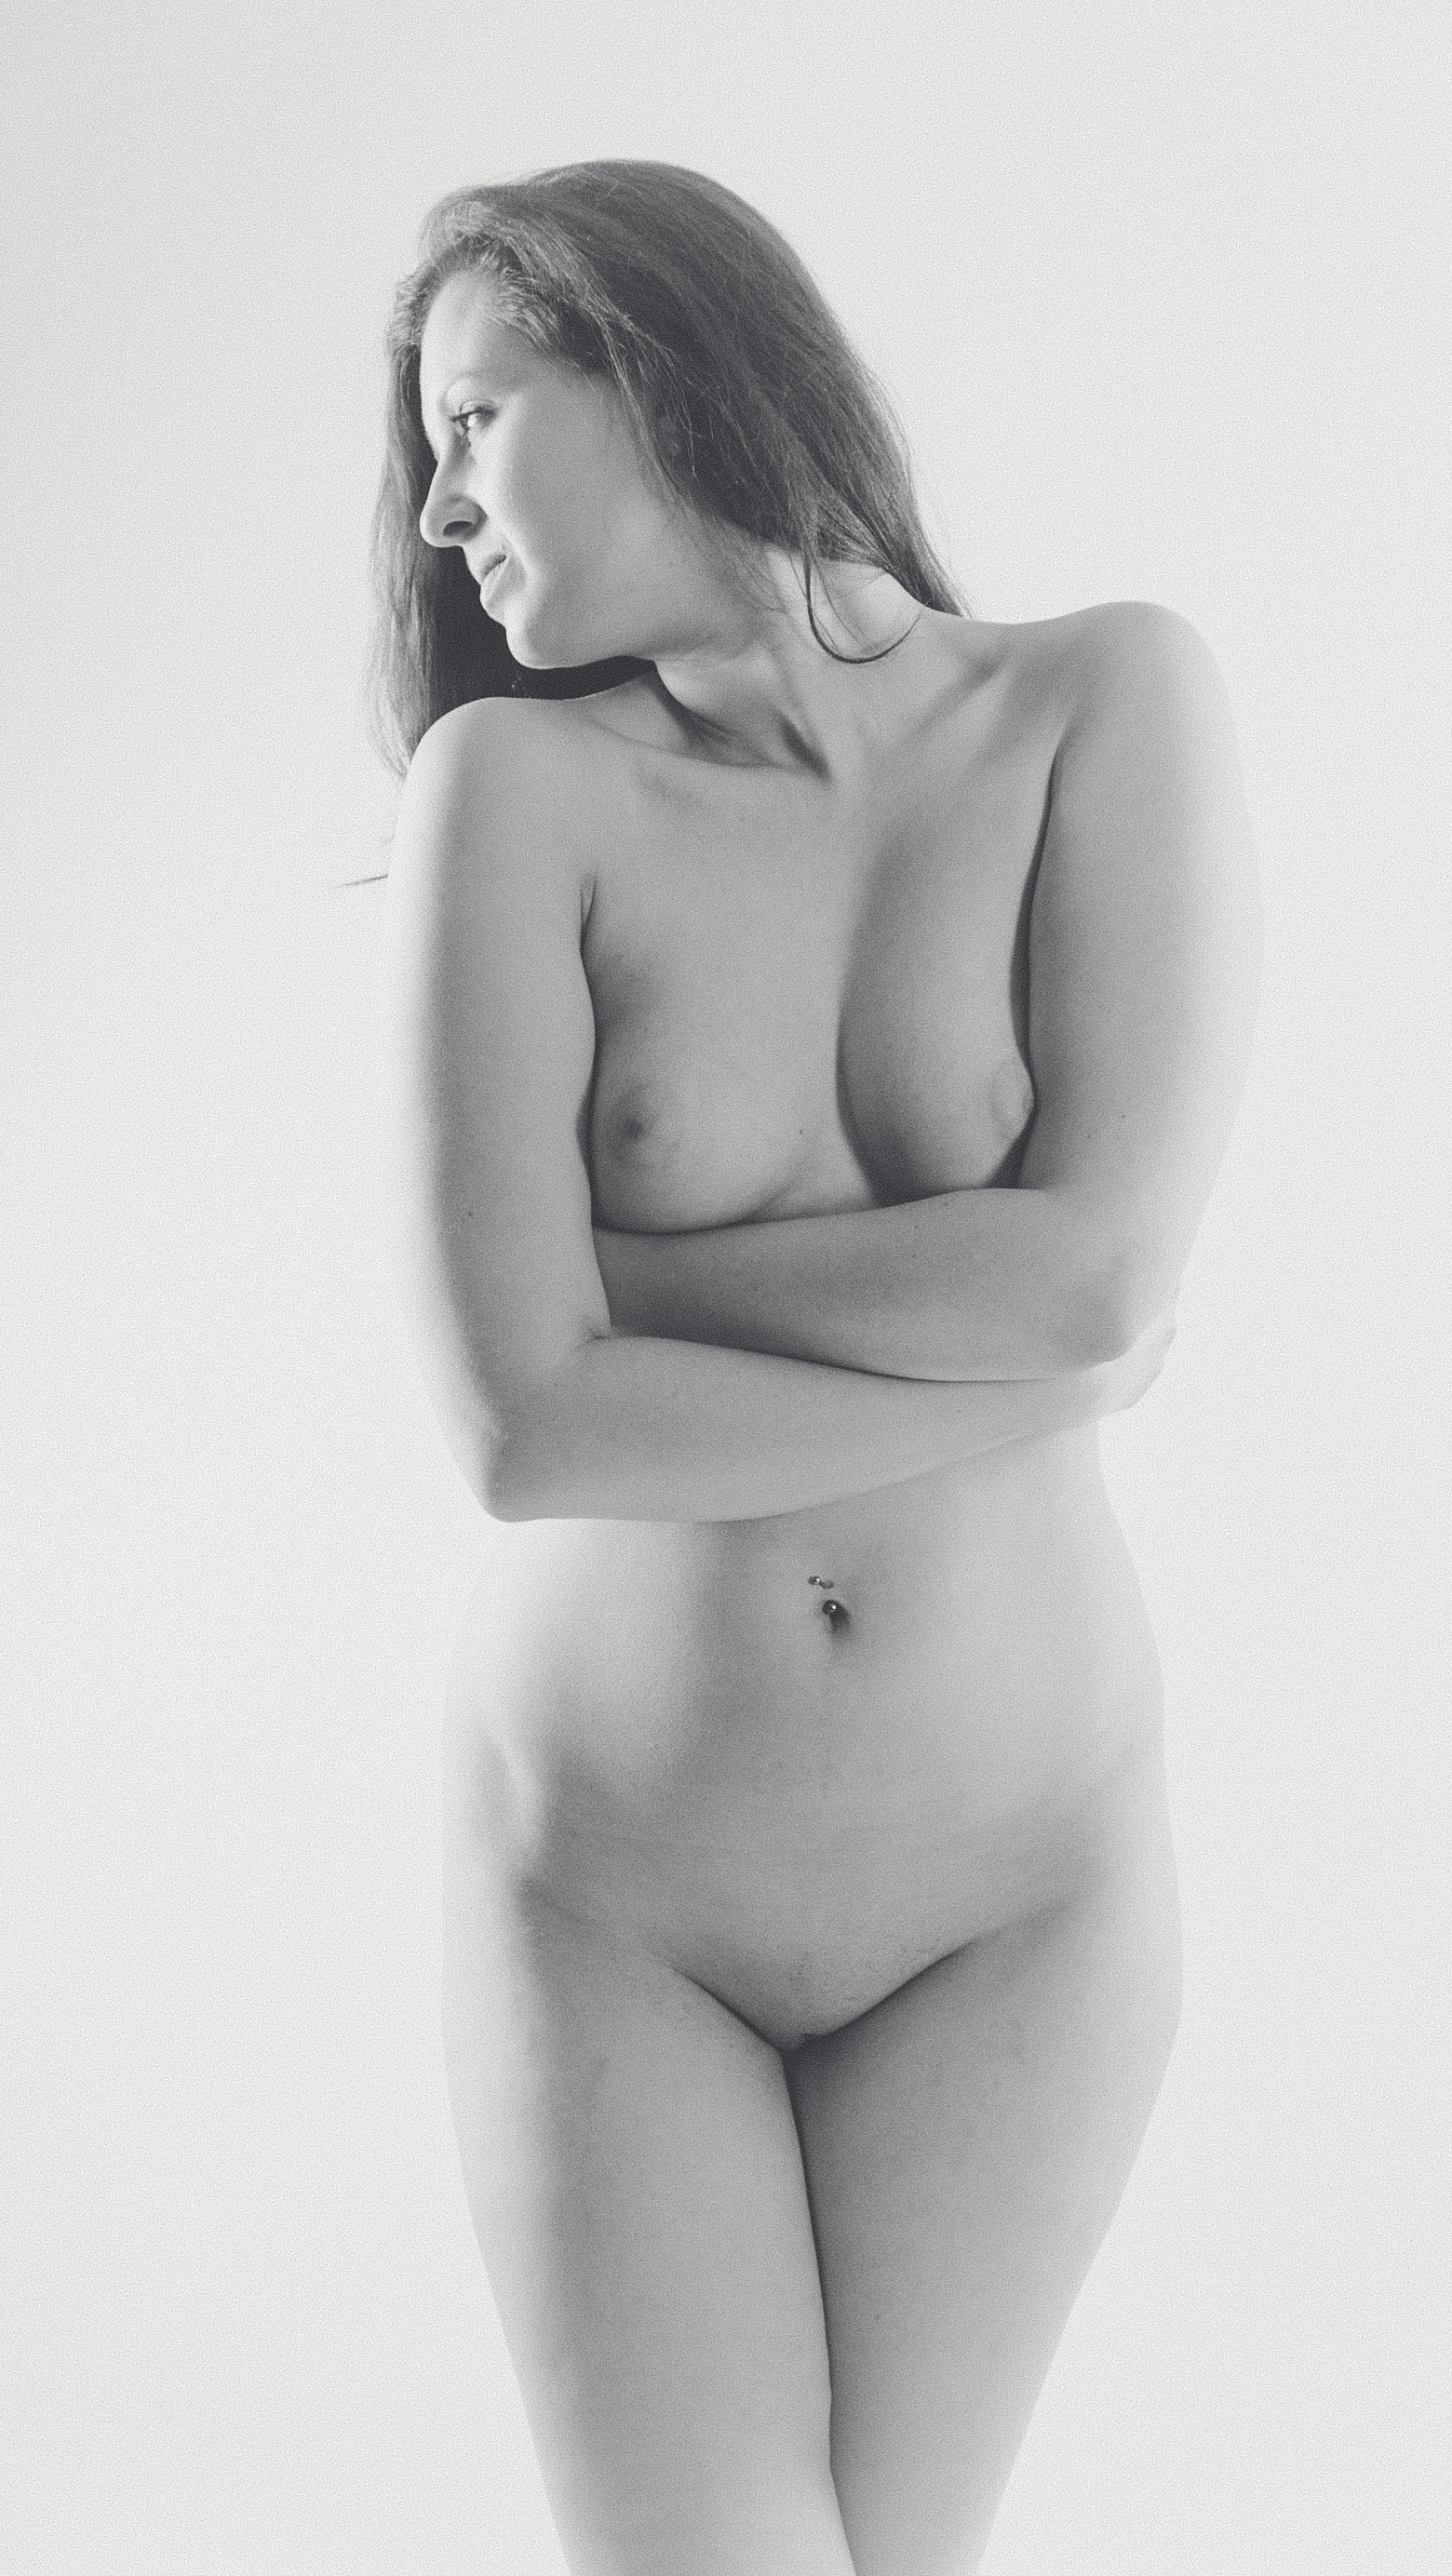 Nude_crossed arms